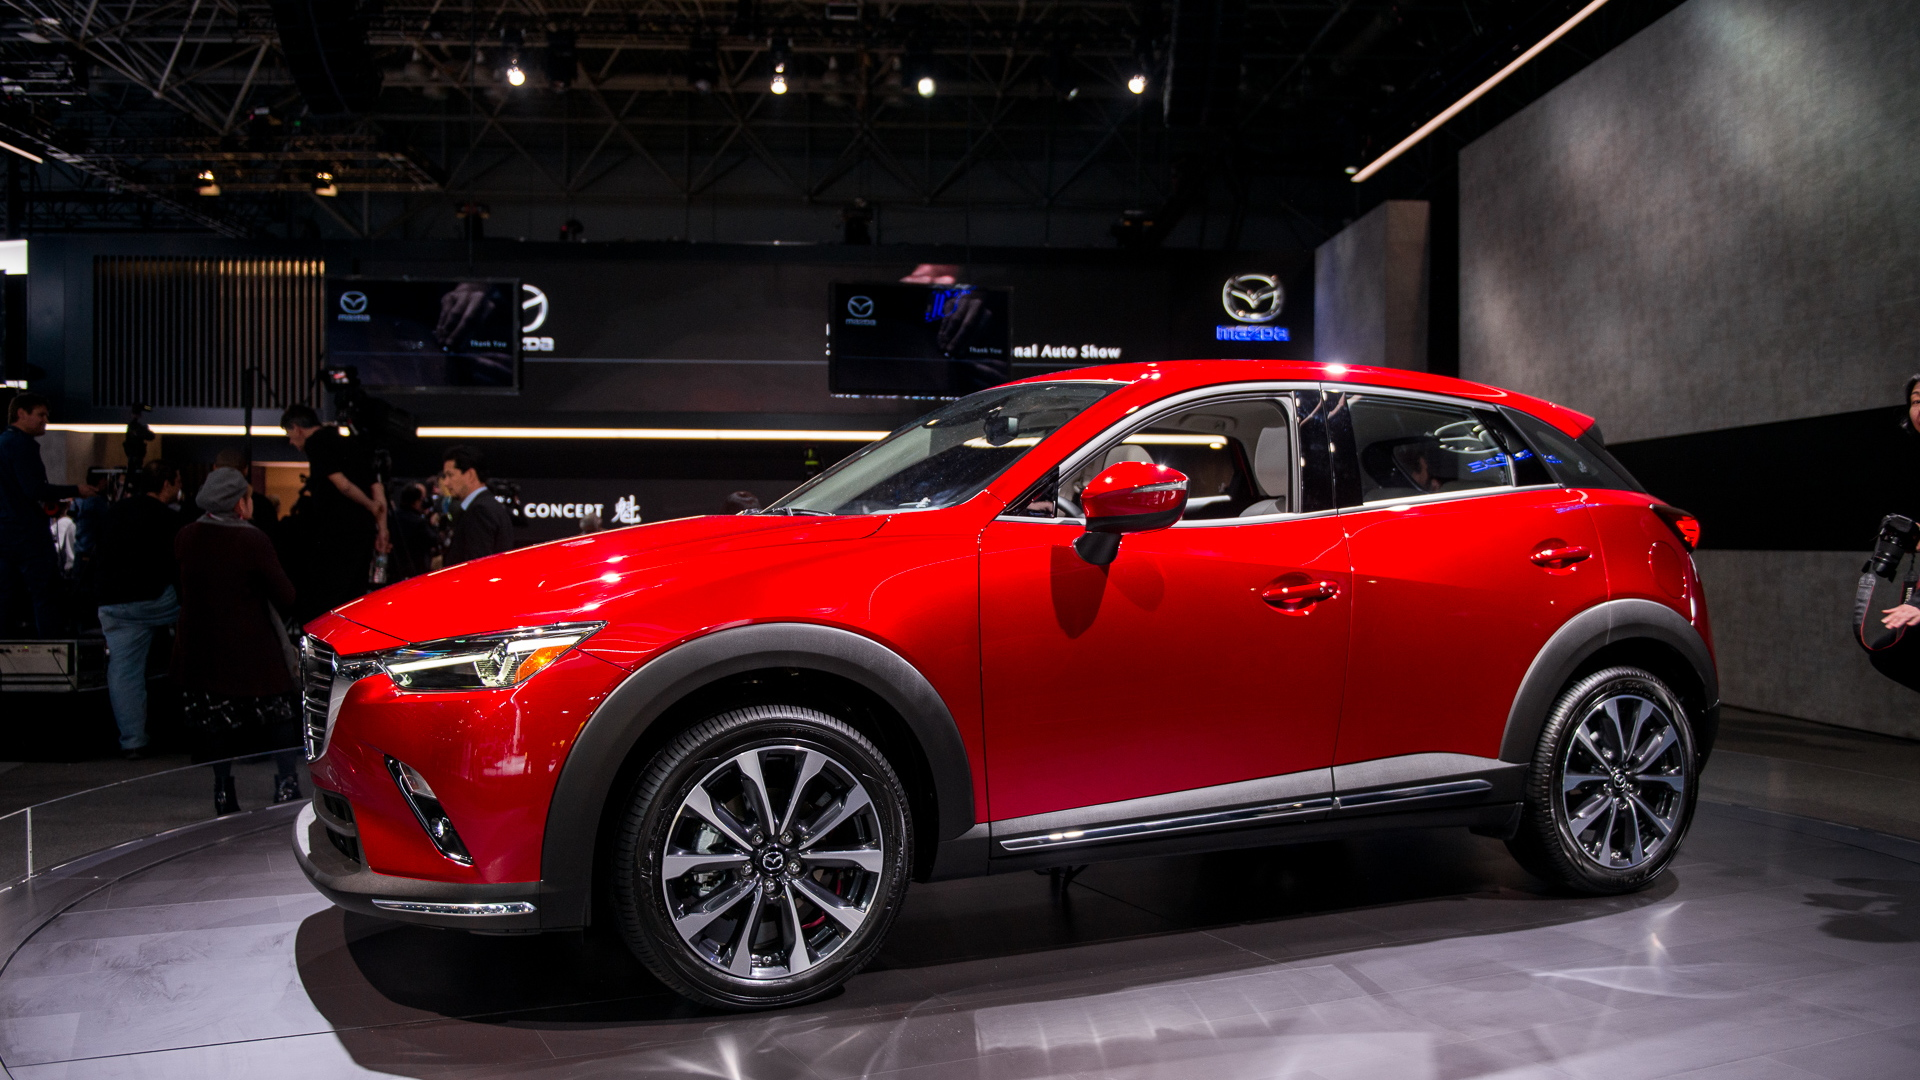 2019 Mazda CX-3, 2018 New York auto show